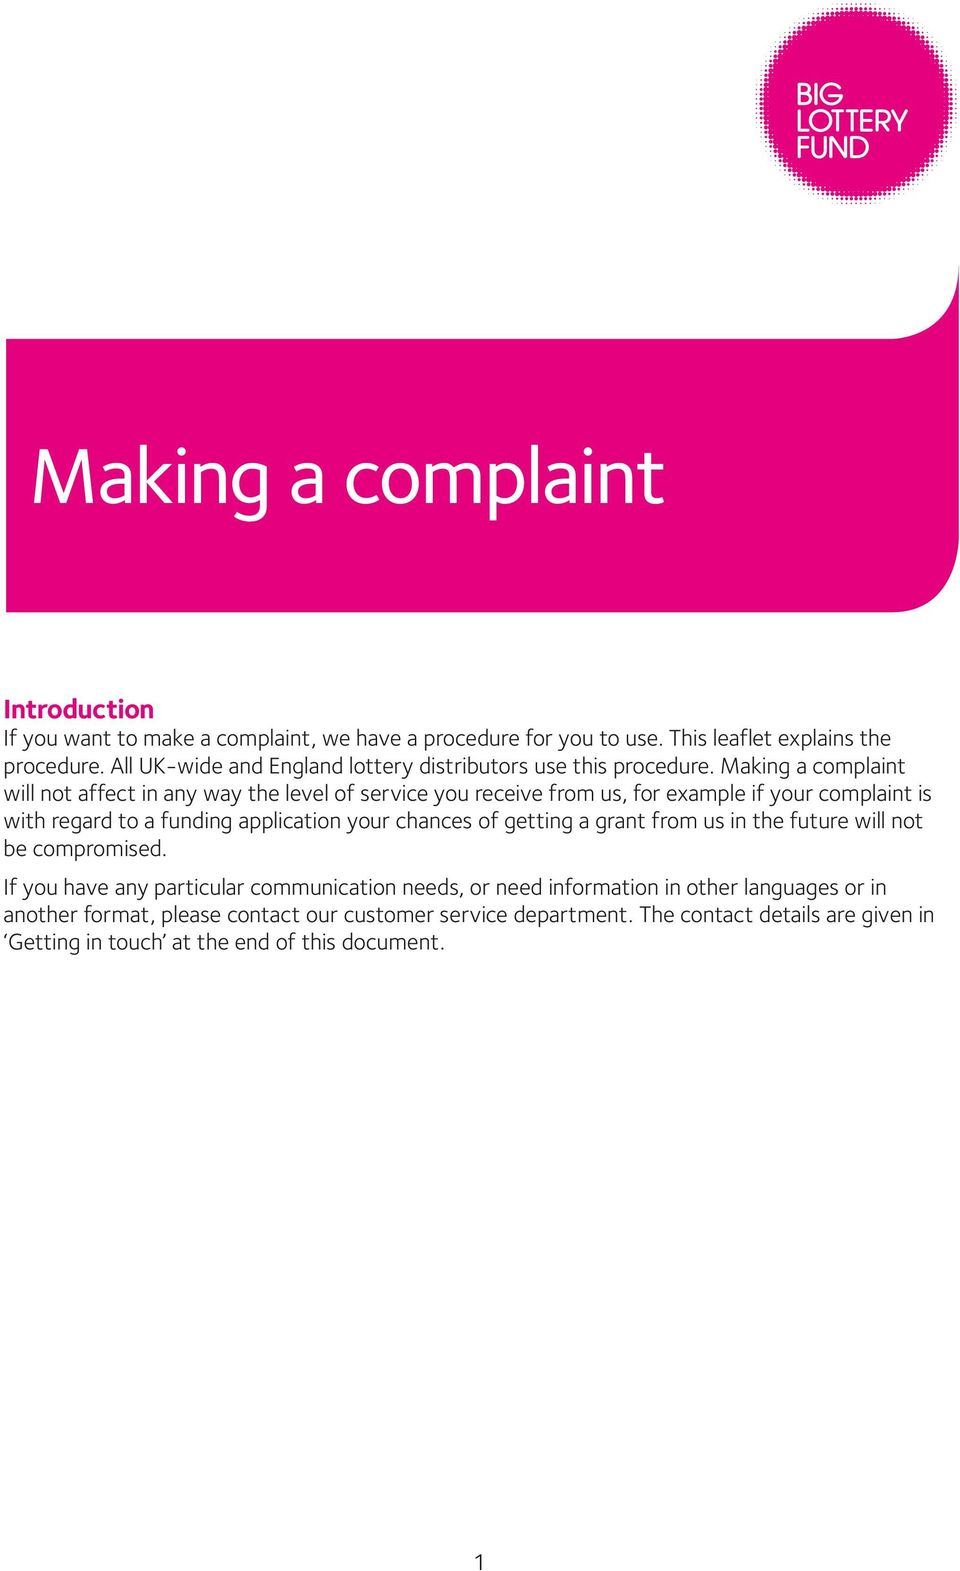 Making a complaint will not affect in any way the level of service you receive from us, for example if your complaint is with regard to a funding application your